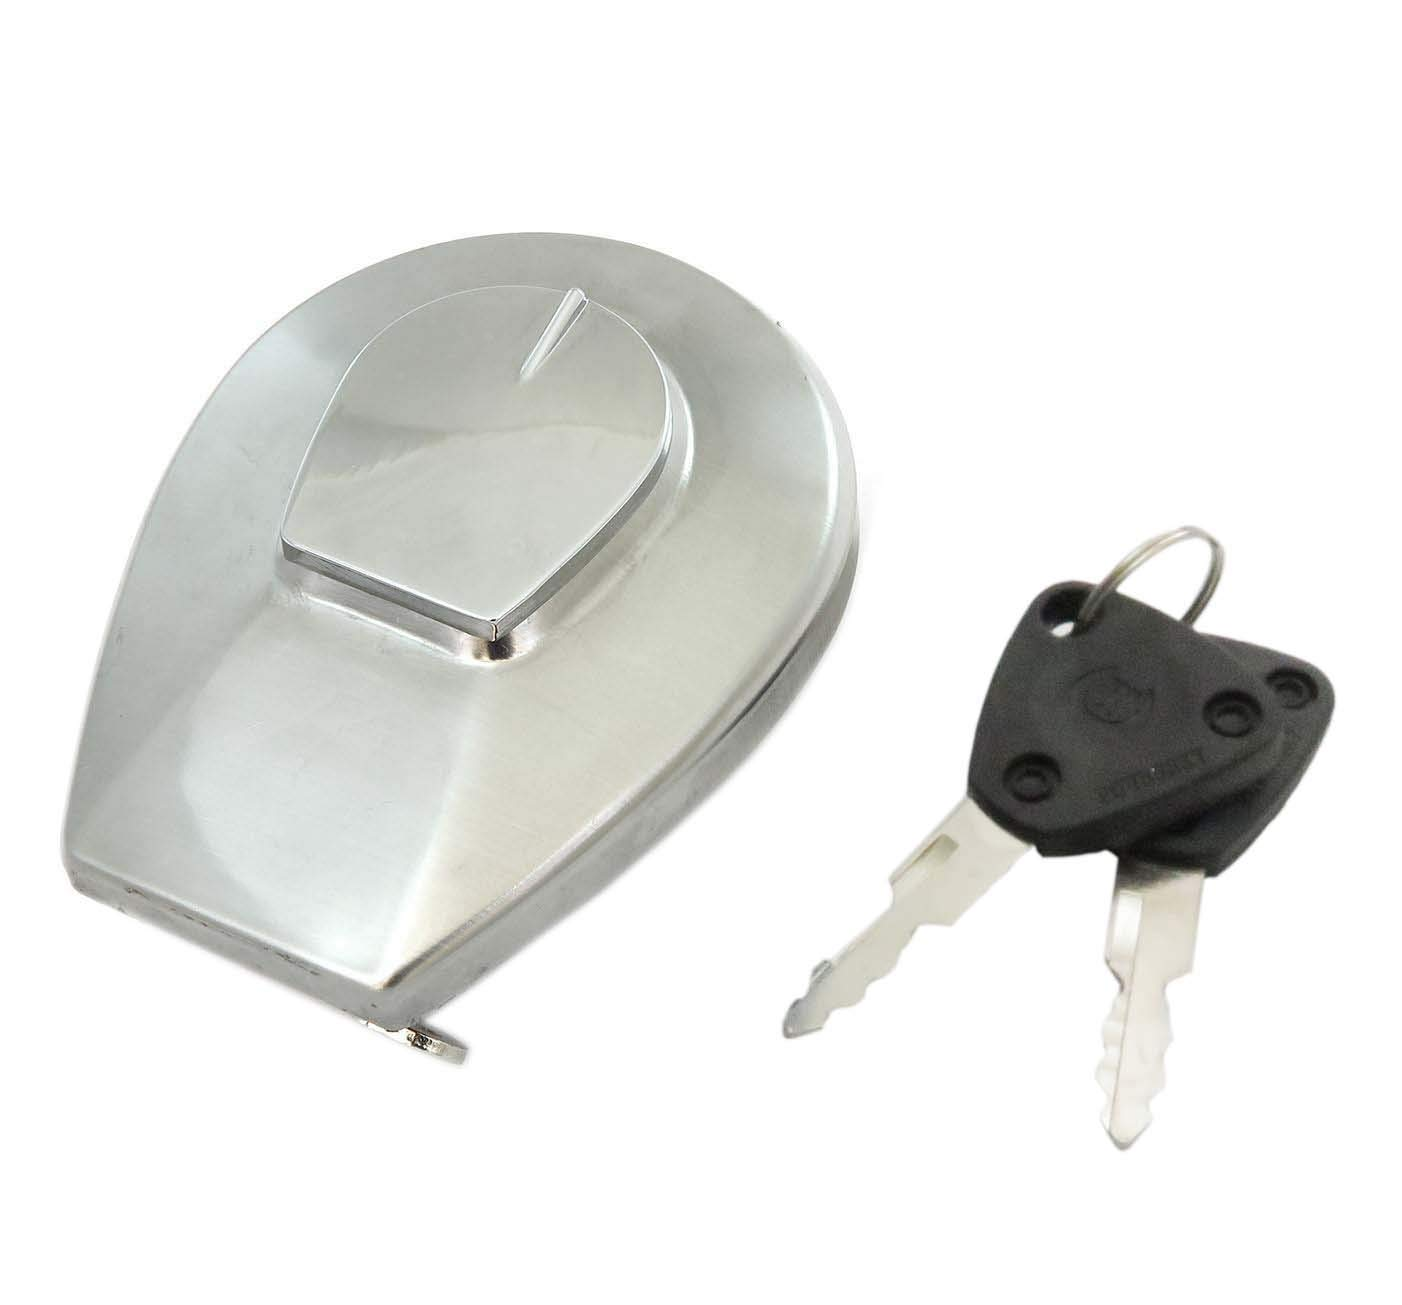 17620-MB1-033 Motorcycle Fuel Gas Cap Tank Cover with 2 Keys for Honda VF750C VF750 VF 750 700 Fuel Tank Cap